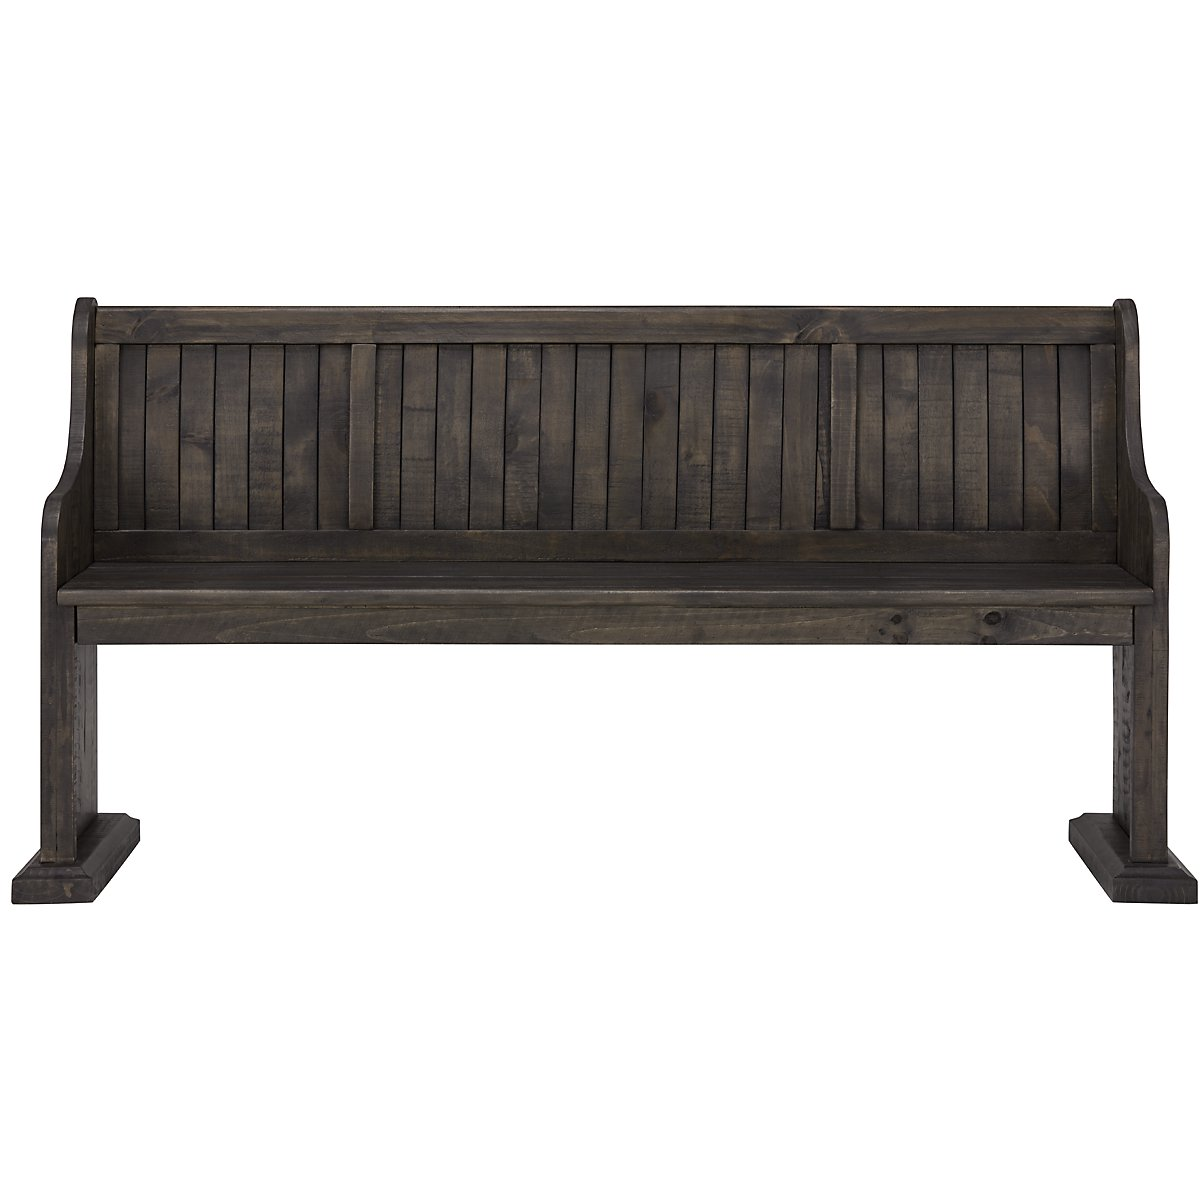 Sonoma Dark Tone Dining Bench